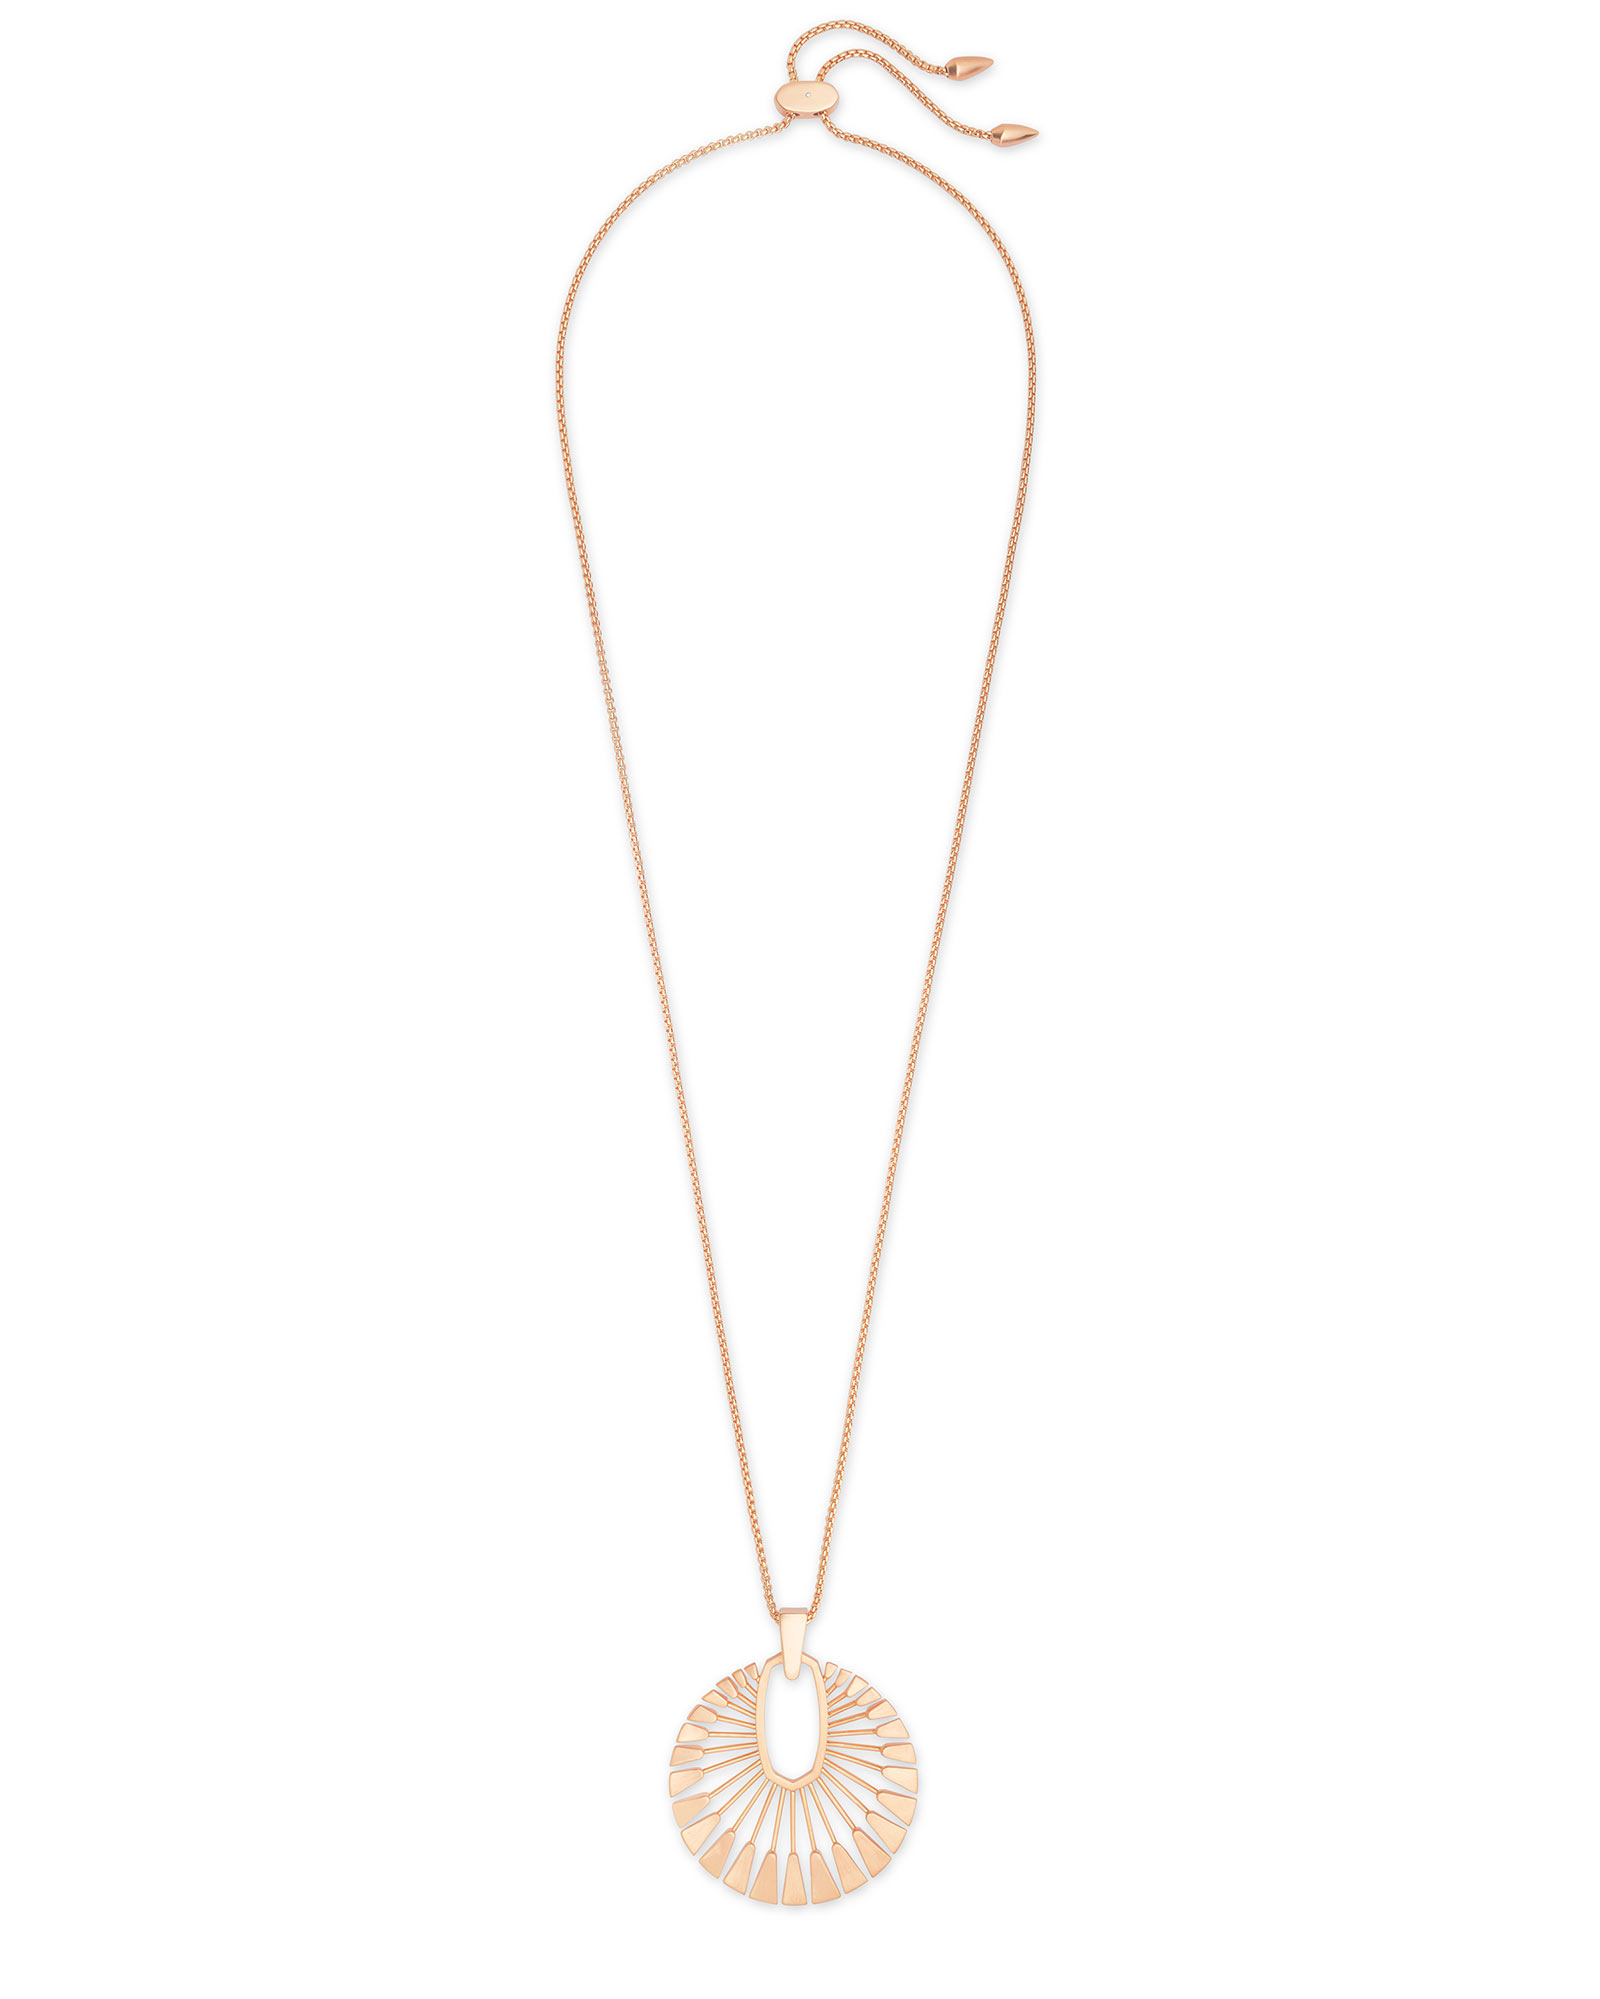 Deanne Long Pendant Necklace in Rose Gold